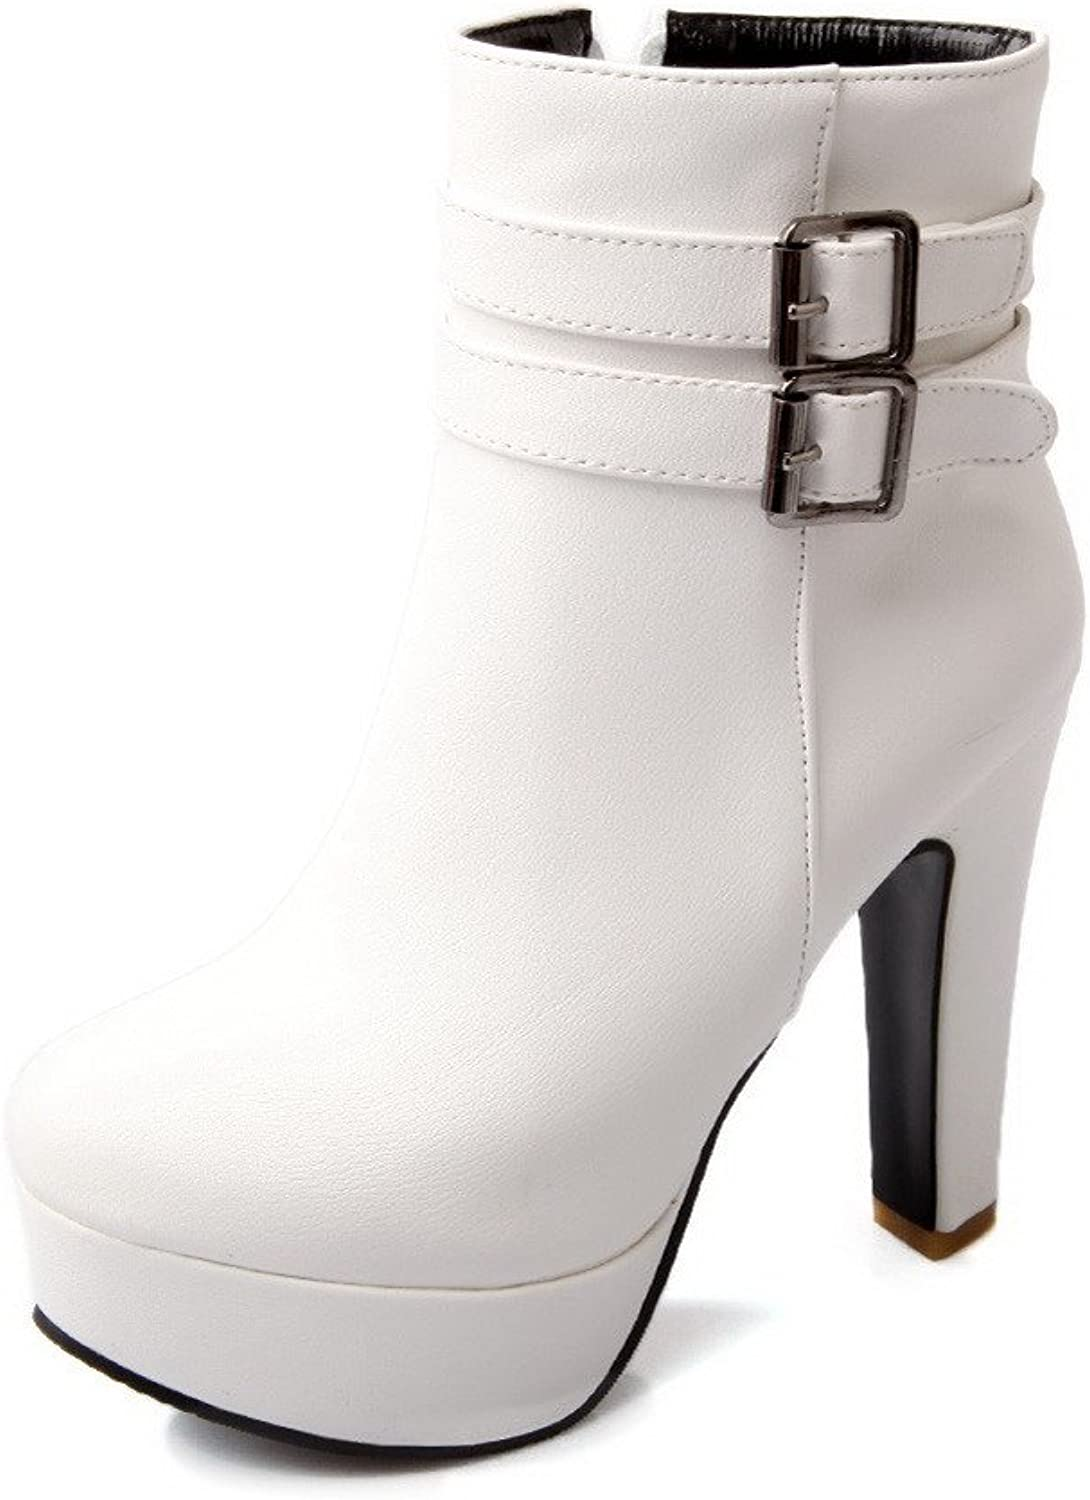 AmoonyFashion Womens High Heels PU Soft Material PU Solid Boots with Chunky Heels and Platform, White, 6.5 B(M) US